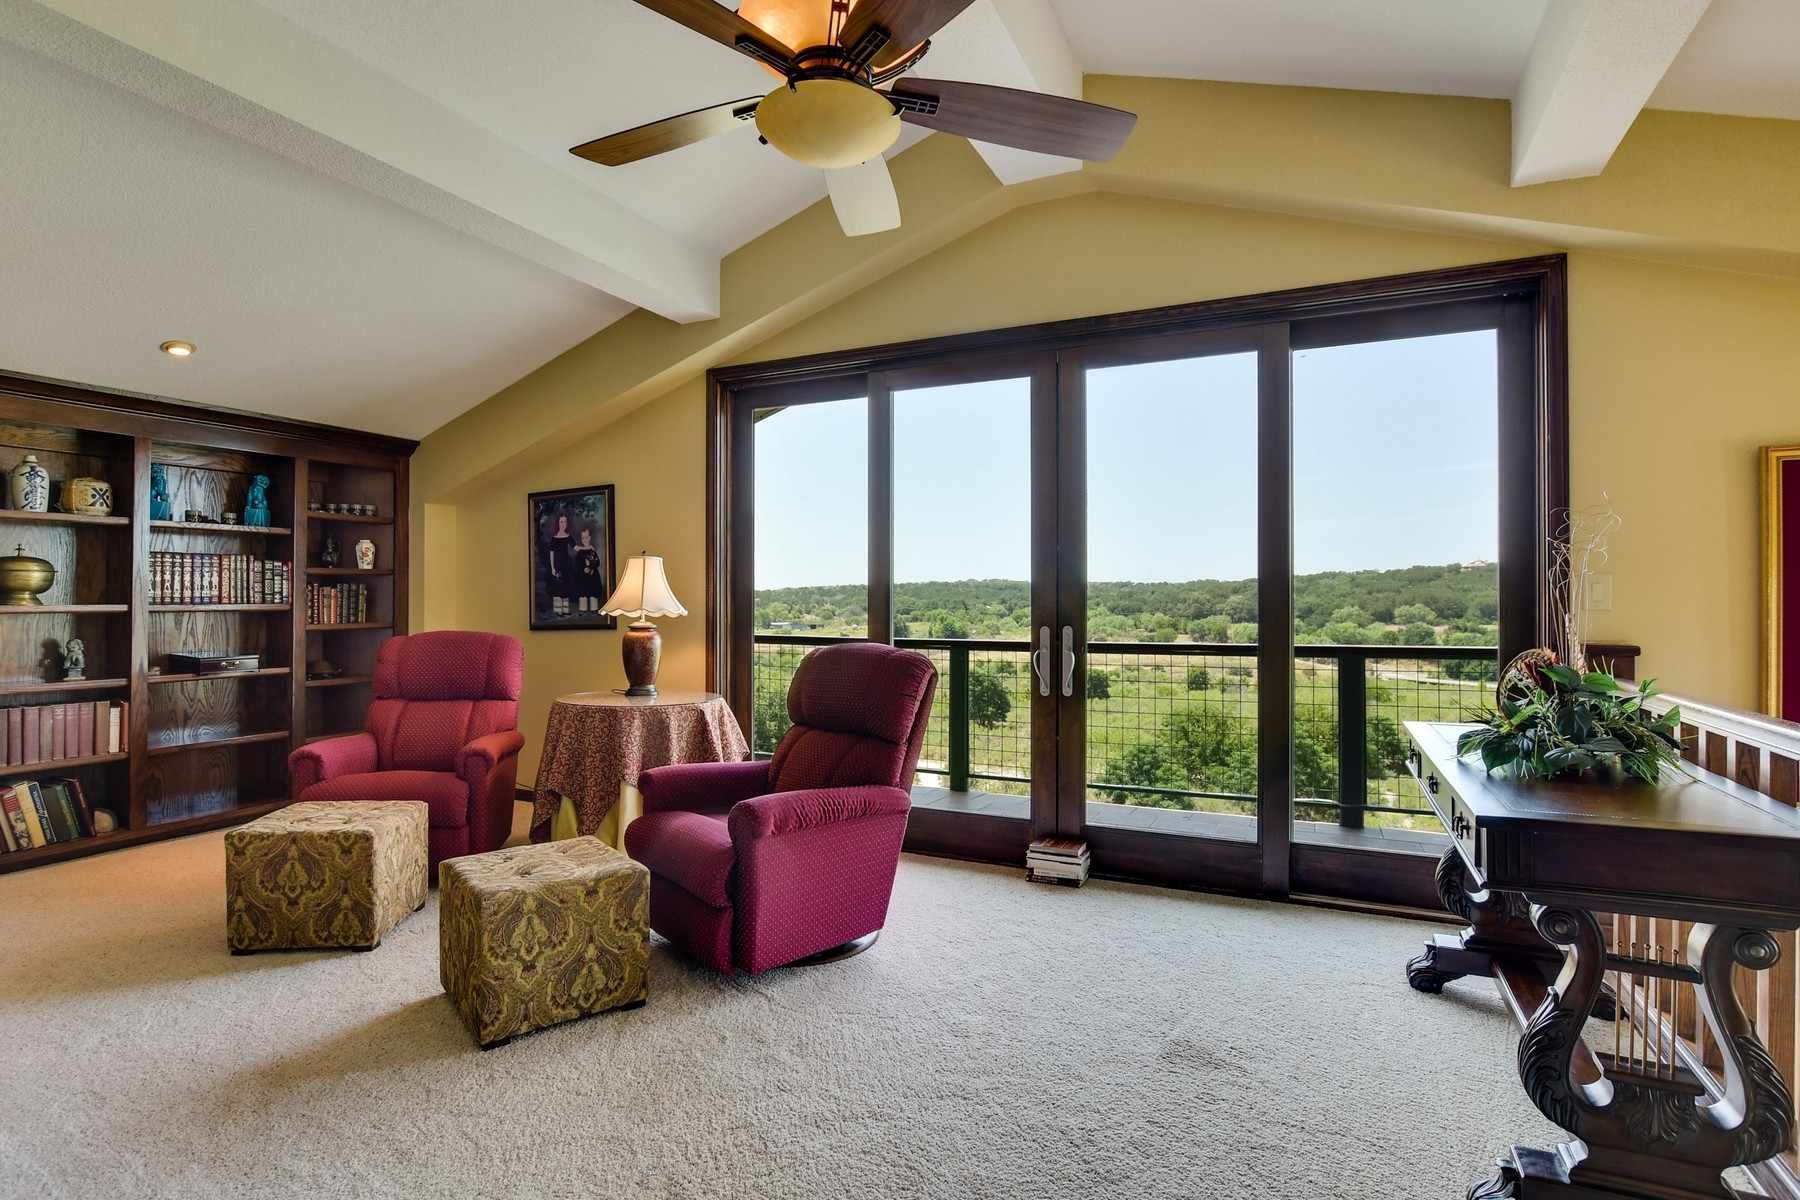 Additional photo for property listing at Breathtaking Cliff House 4589 Dos Rios Trl Mason, Texas 78756 United States